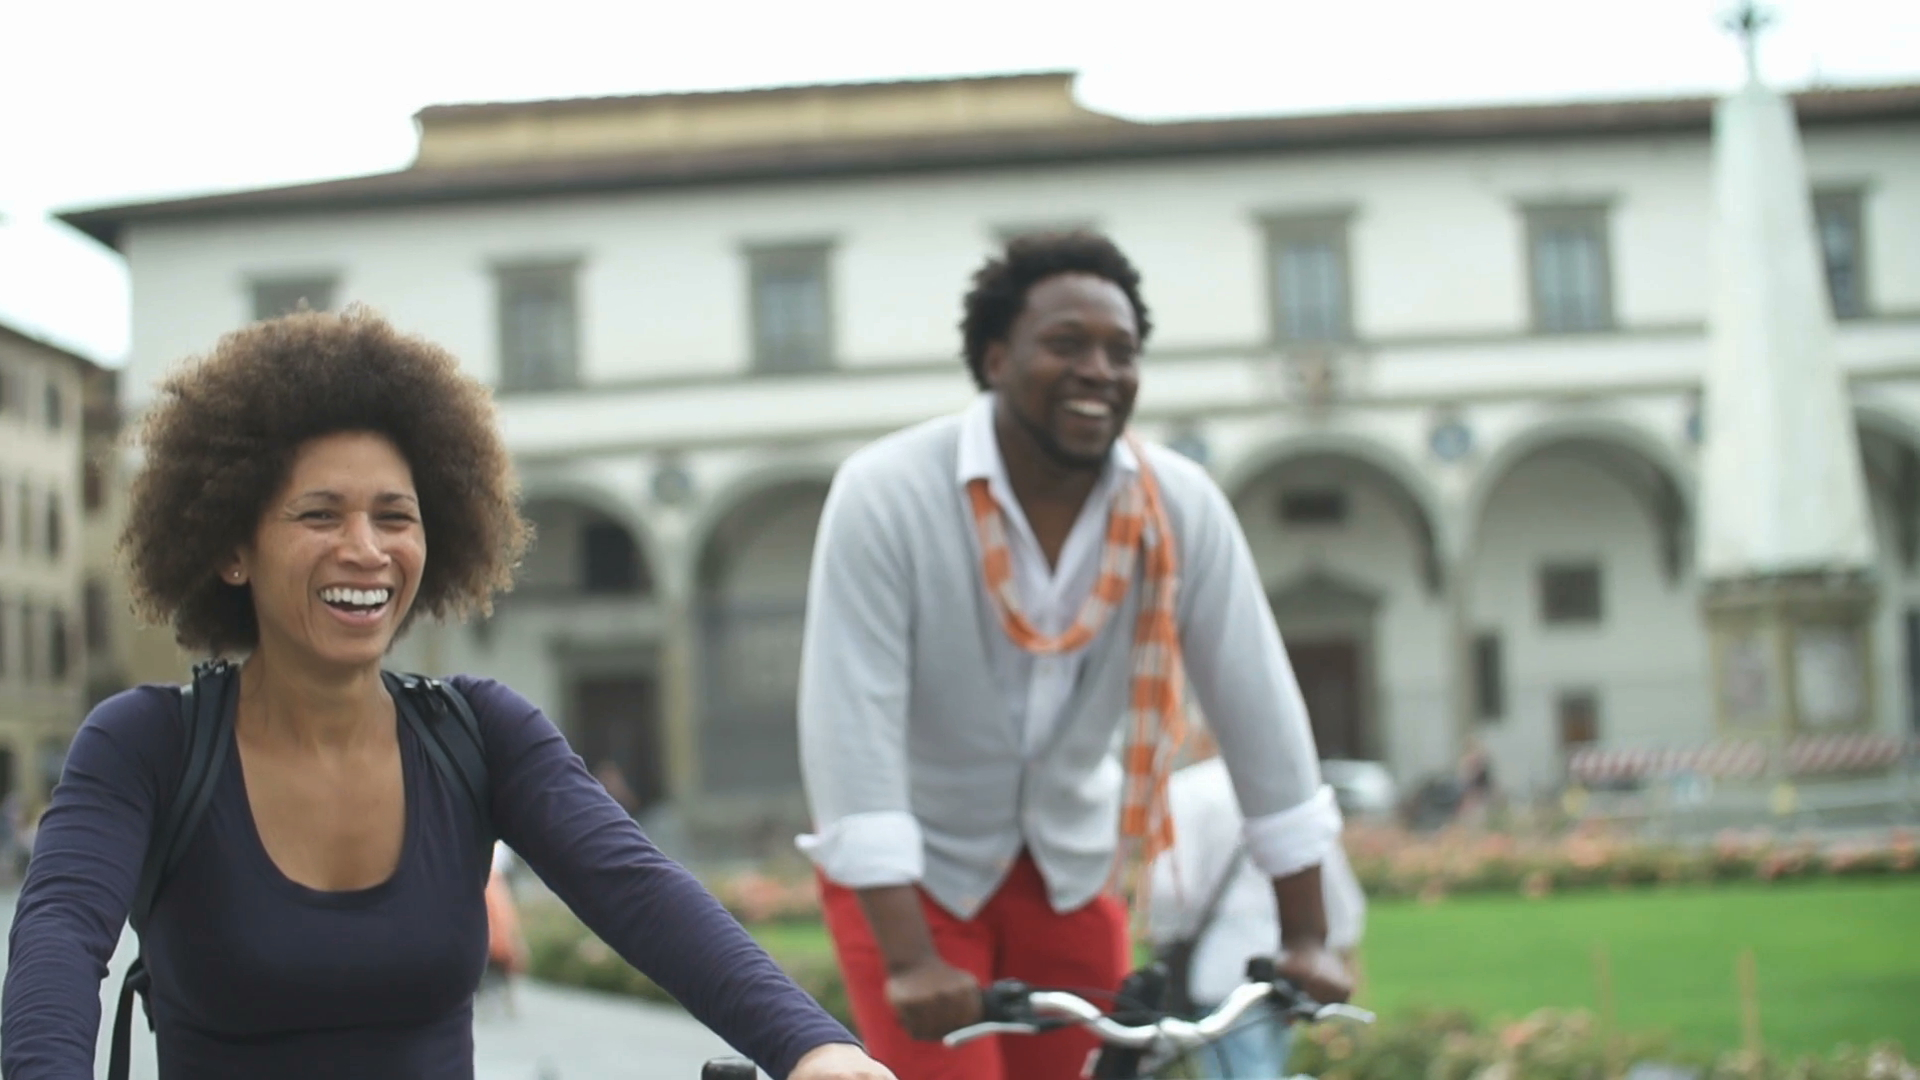 two people riding a bike in the city